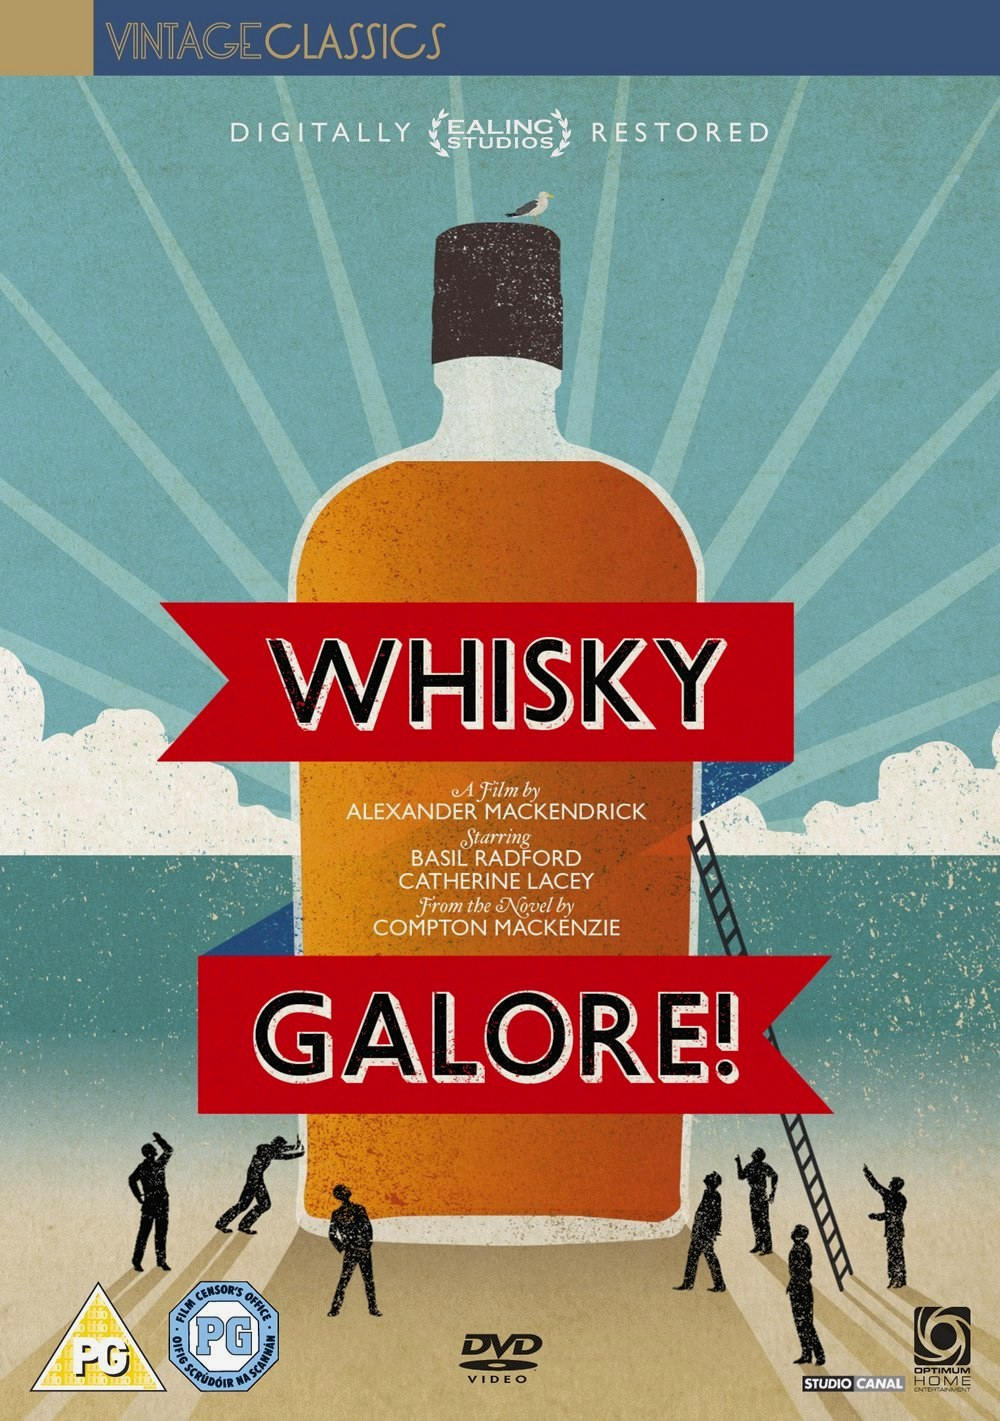 Whisky Galore! DVD from Optimum, 2011